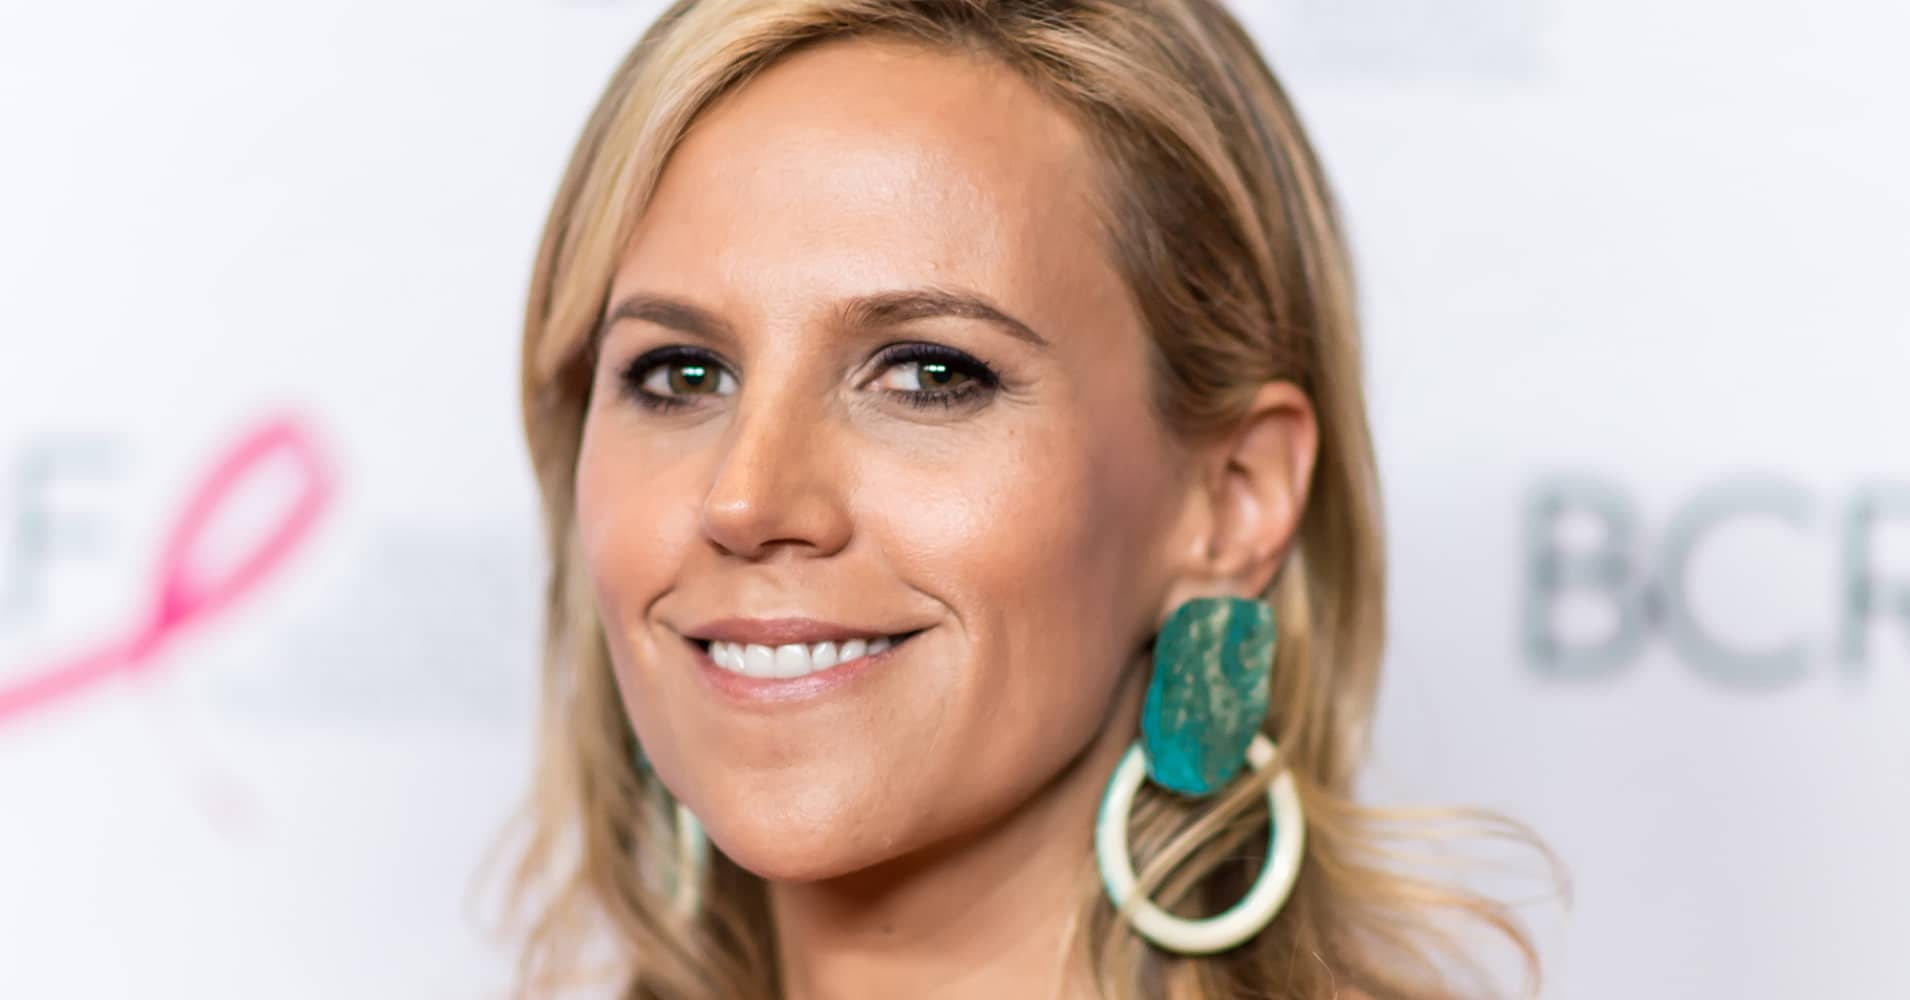 Tory Burch says women at work should embrace their career ambitions.